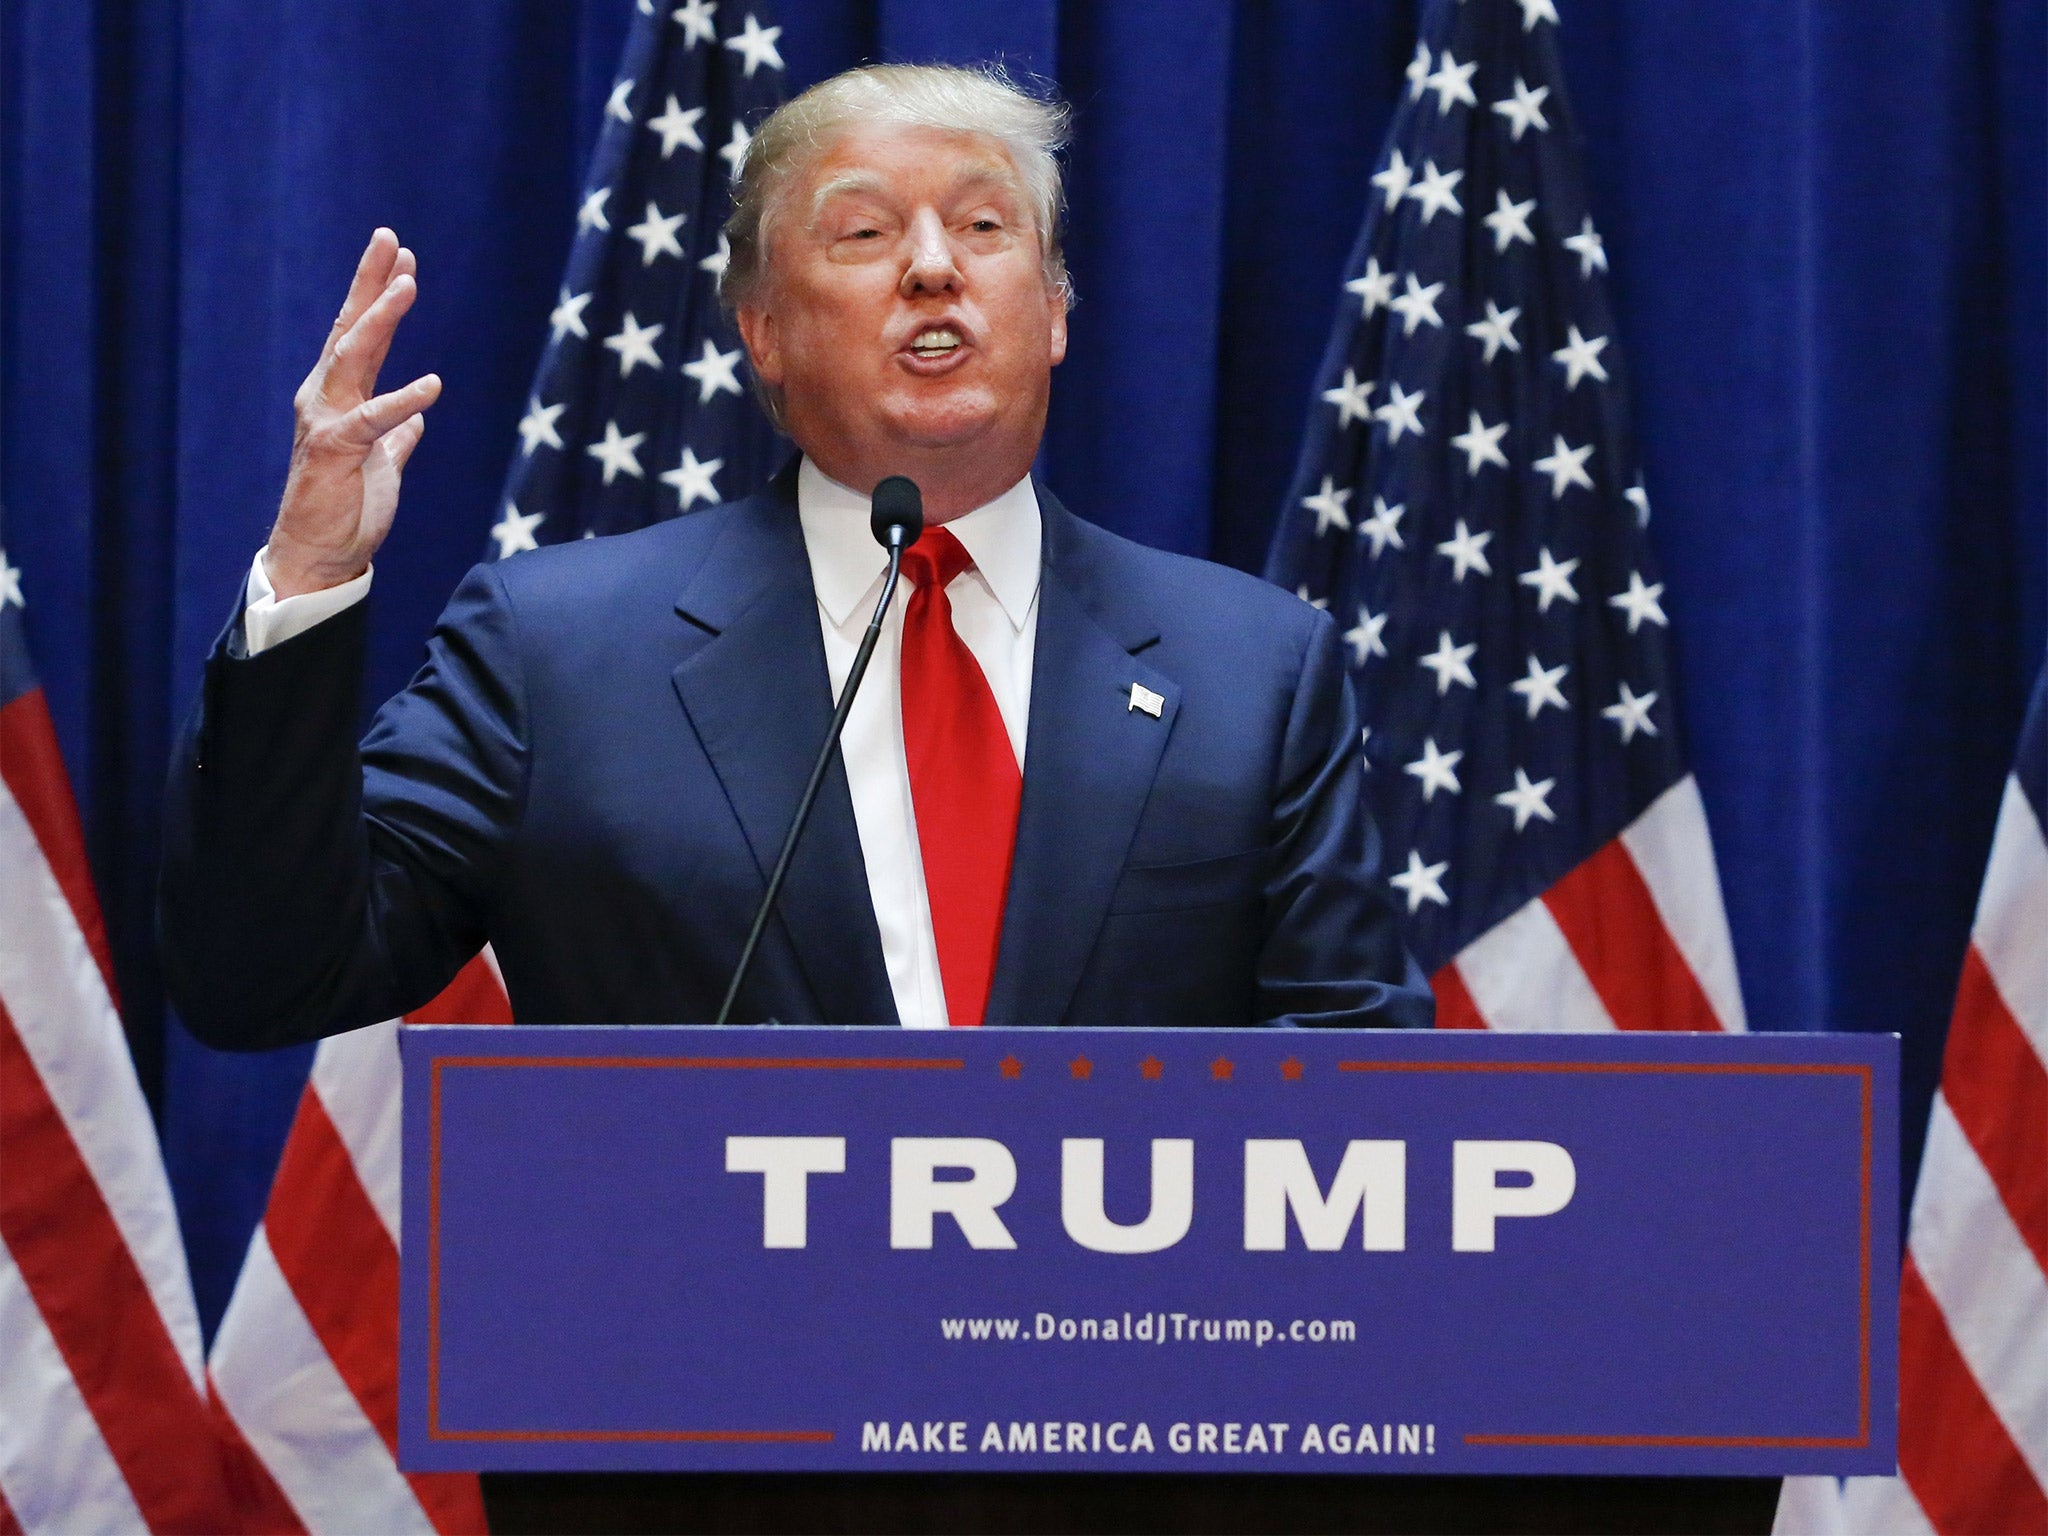 Donald trump presidential candidate thinks his name is for Make america great again wallpaper